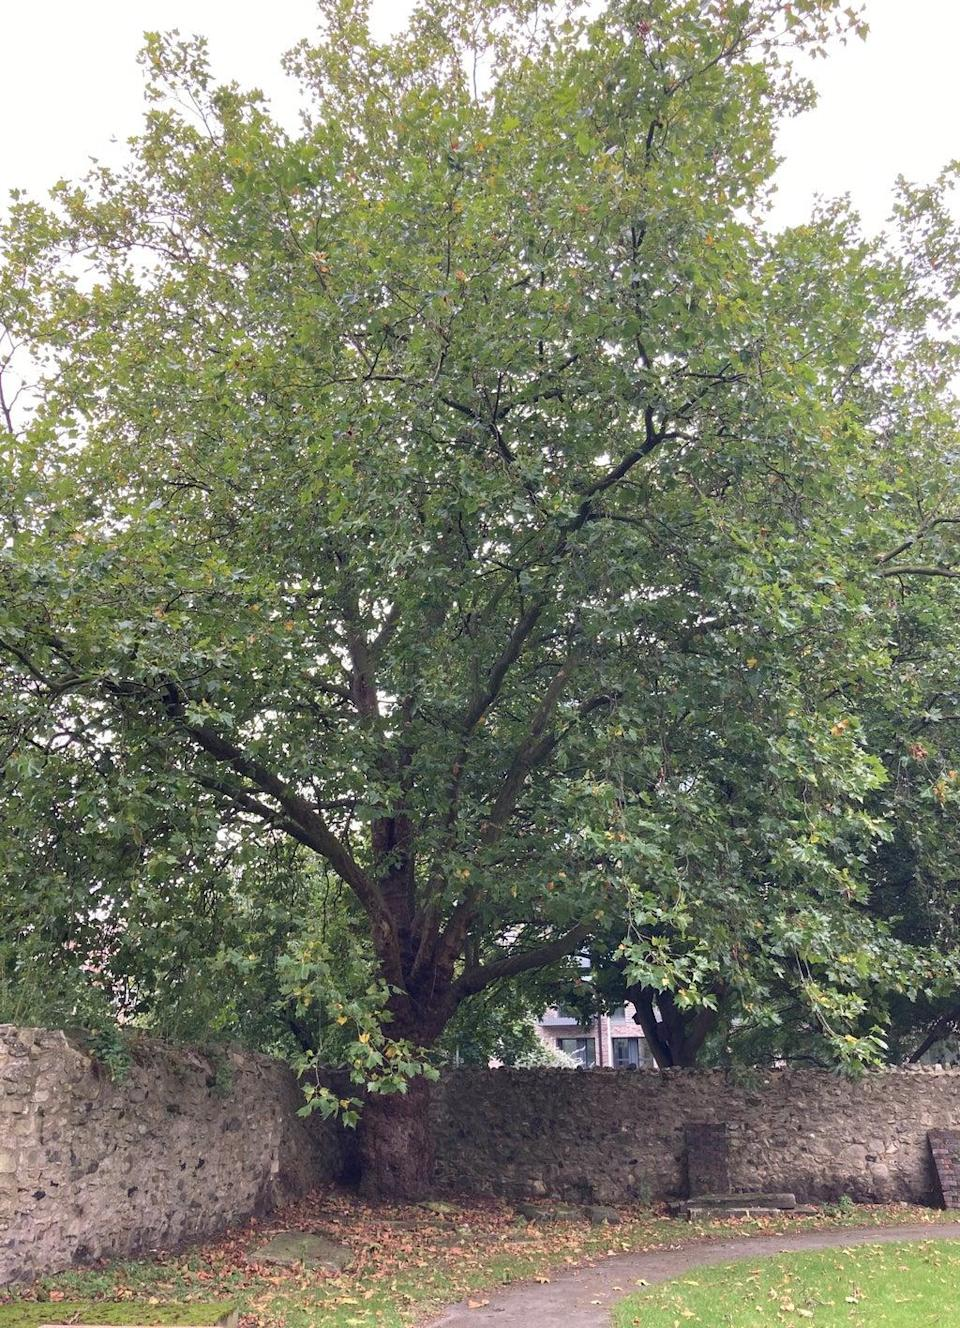 A large maple tree in a corner of the walled cemetery in St Margaret's churchyard in Barking, east London, where the bodies of Gabriel Kovari, 22, and Daniel Whitworth, 21, were found (Emily Pennink/PA) (PA Wire)